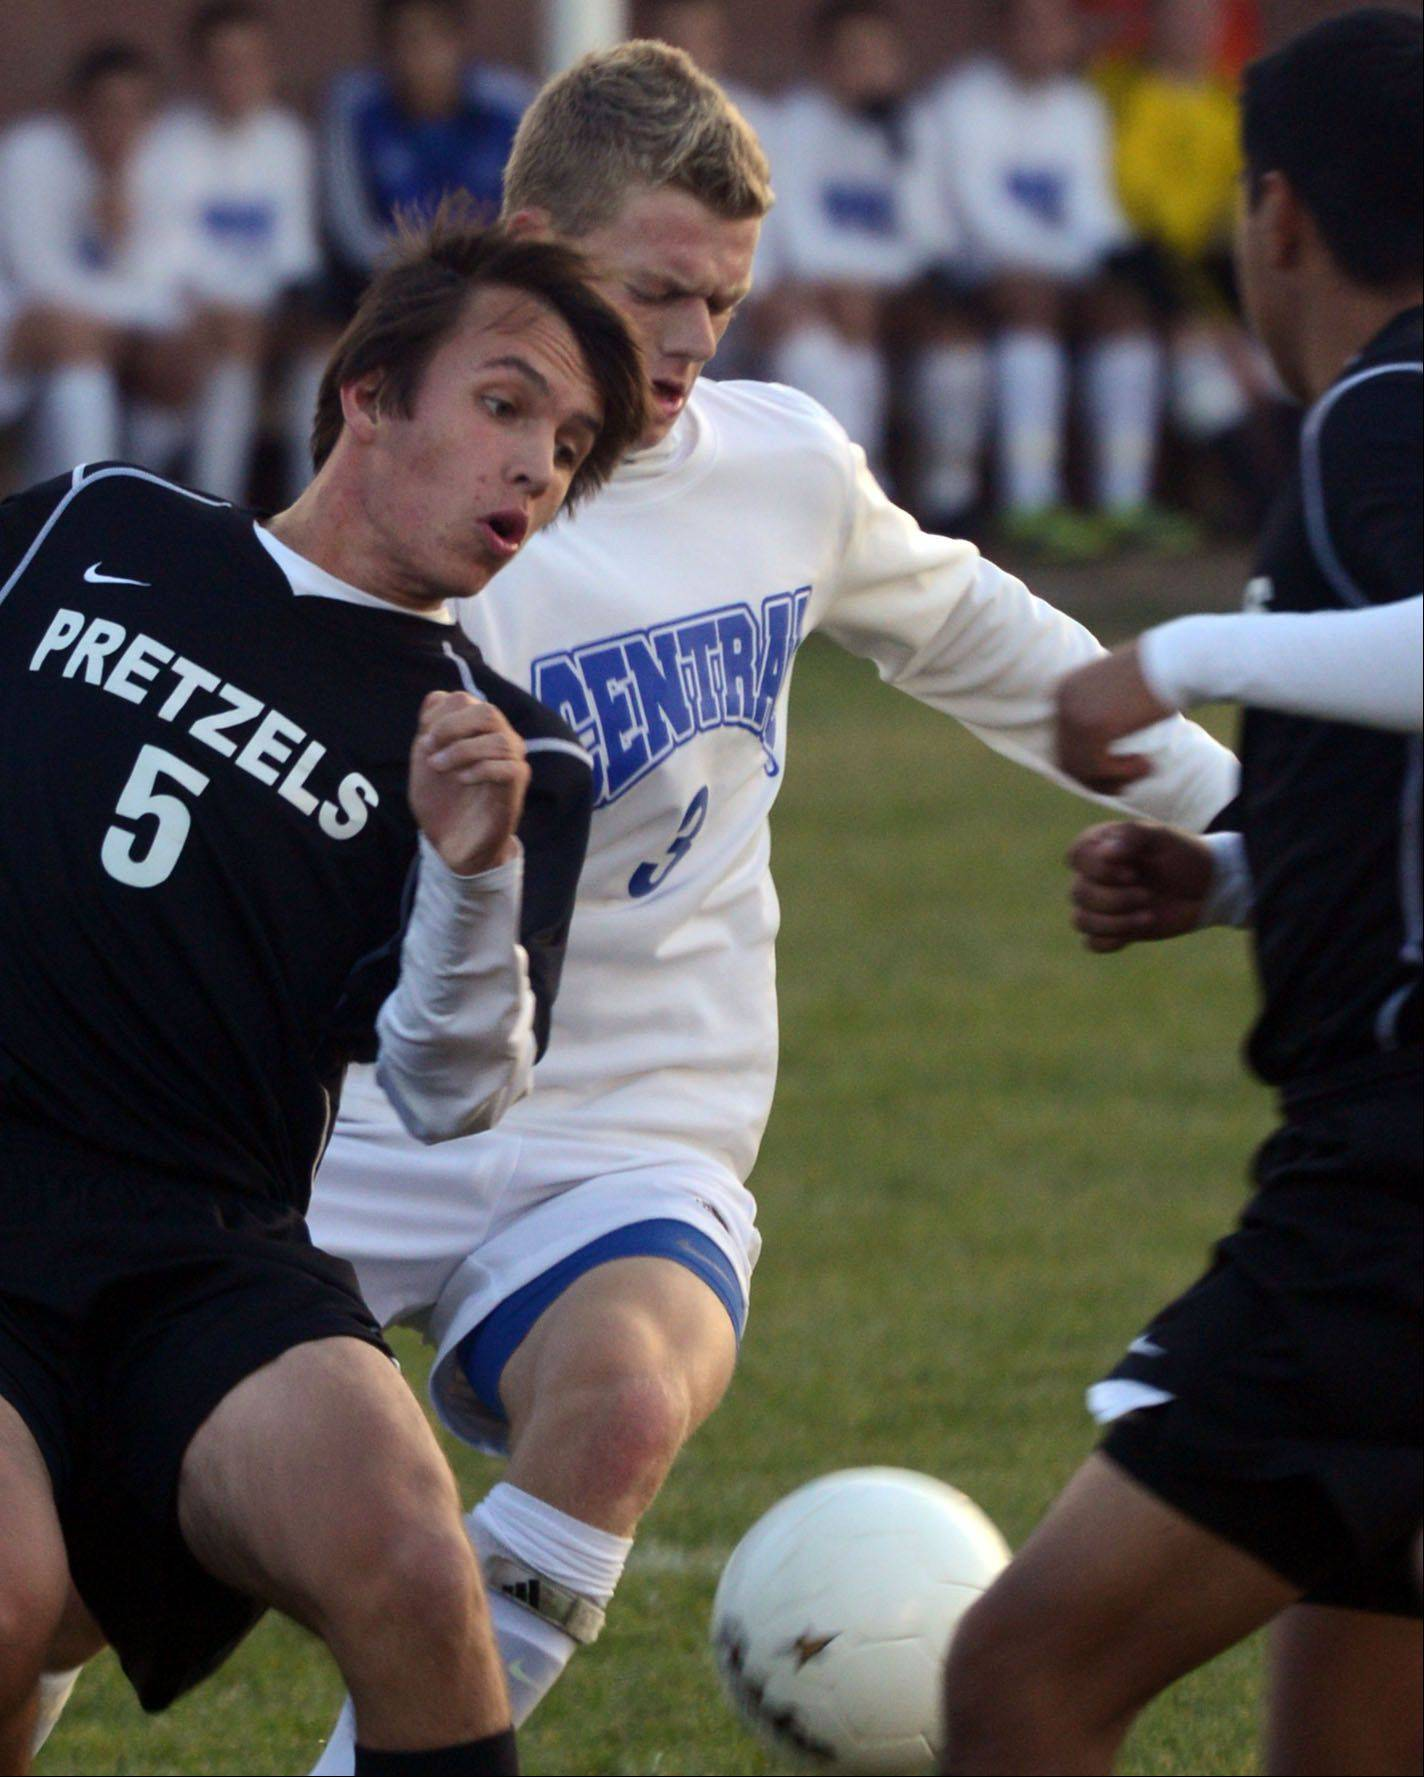 Burlington Central's Stefan Jochum, right, battles Freeport's Philip Ohrtmann, left, during a soccer sectional semifinal game at Burlington on Tuesday night.